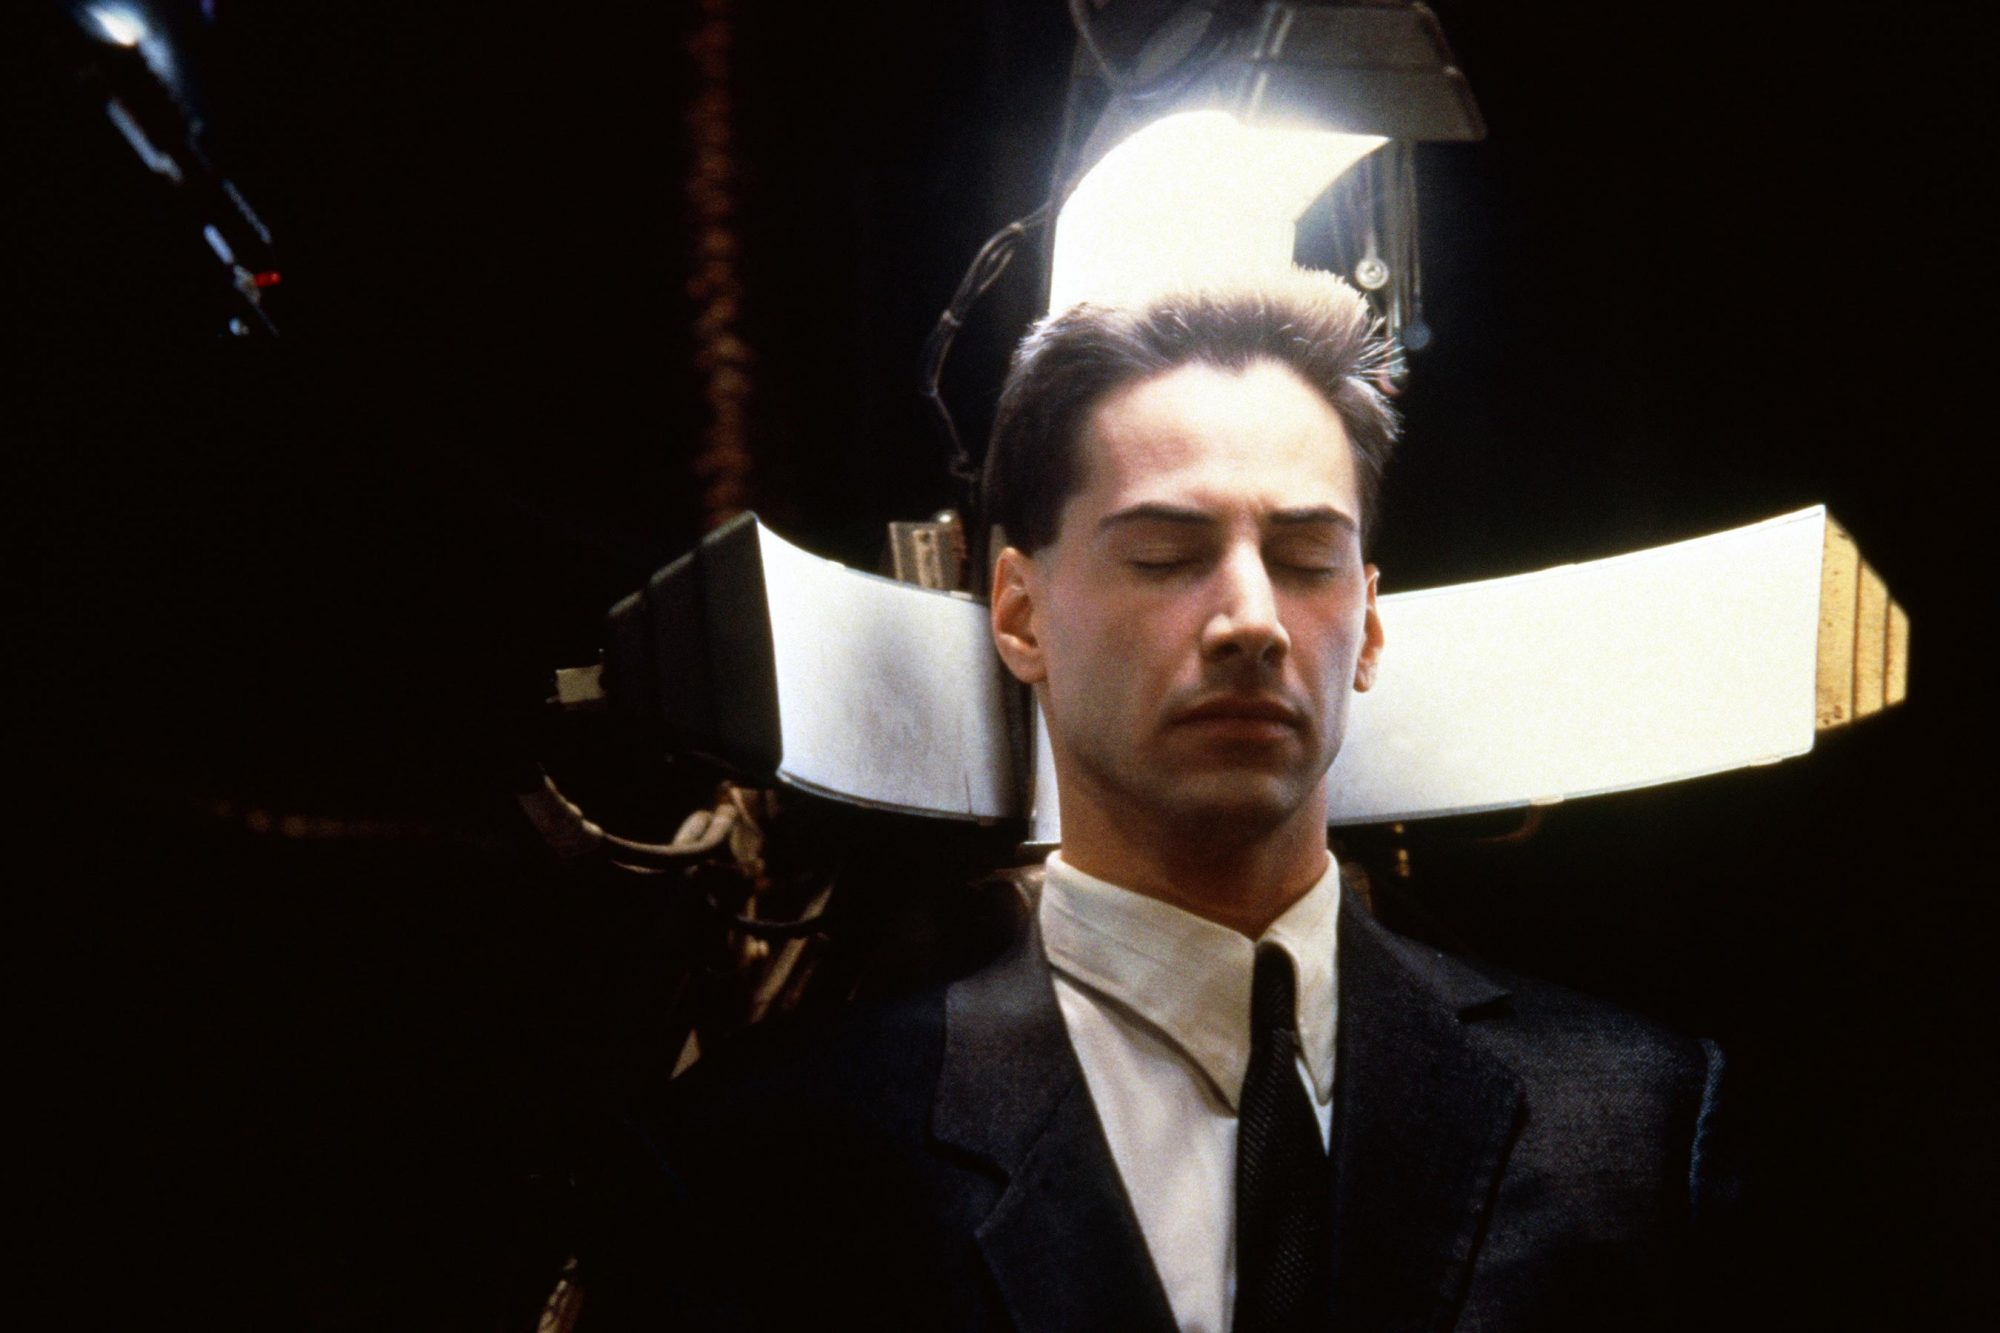 JOHNNY MNEMONIC, Keanu Reeves, 1995, (c) TriStar/courtesy Everett collection